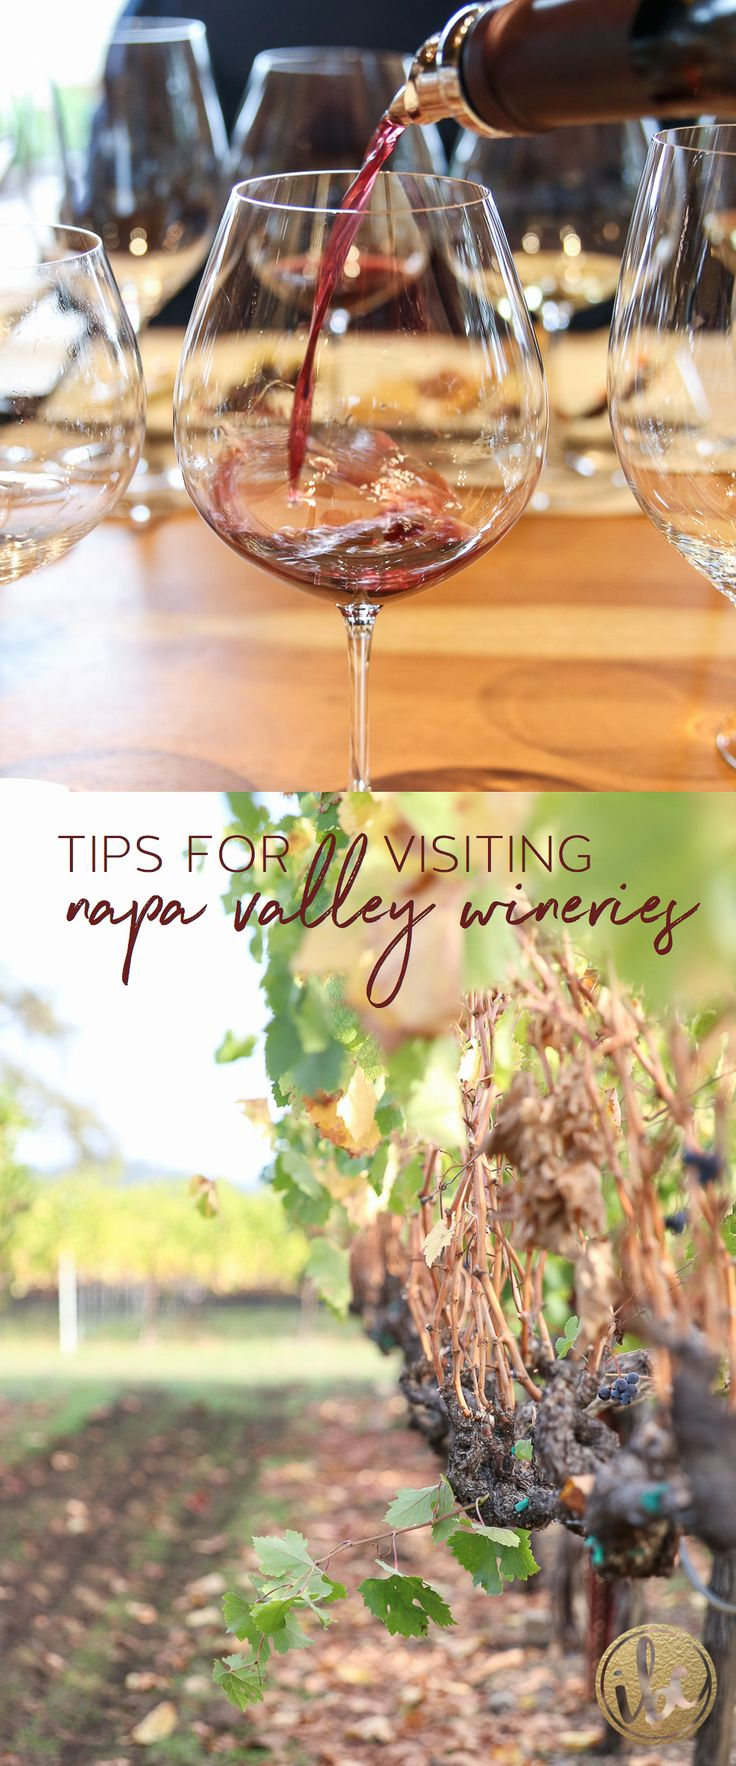 Tips and tricks - Wine Tasting in Napa Valley / travel guide